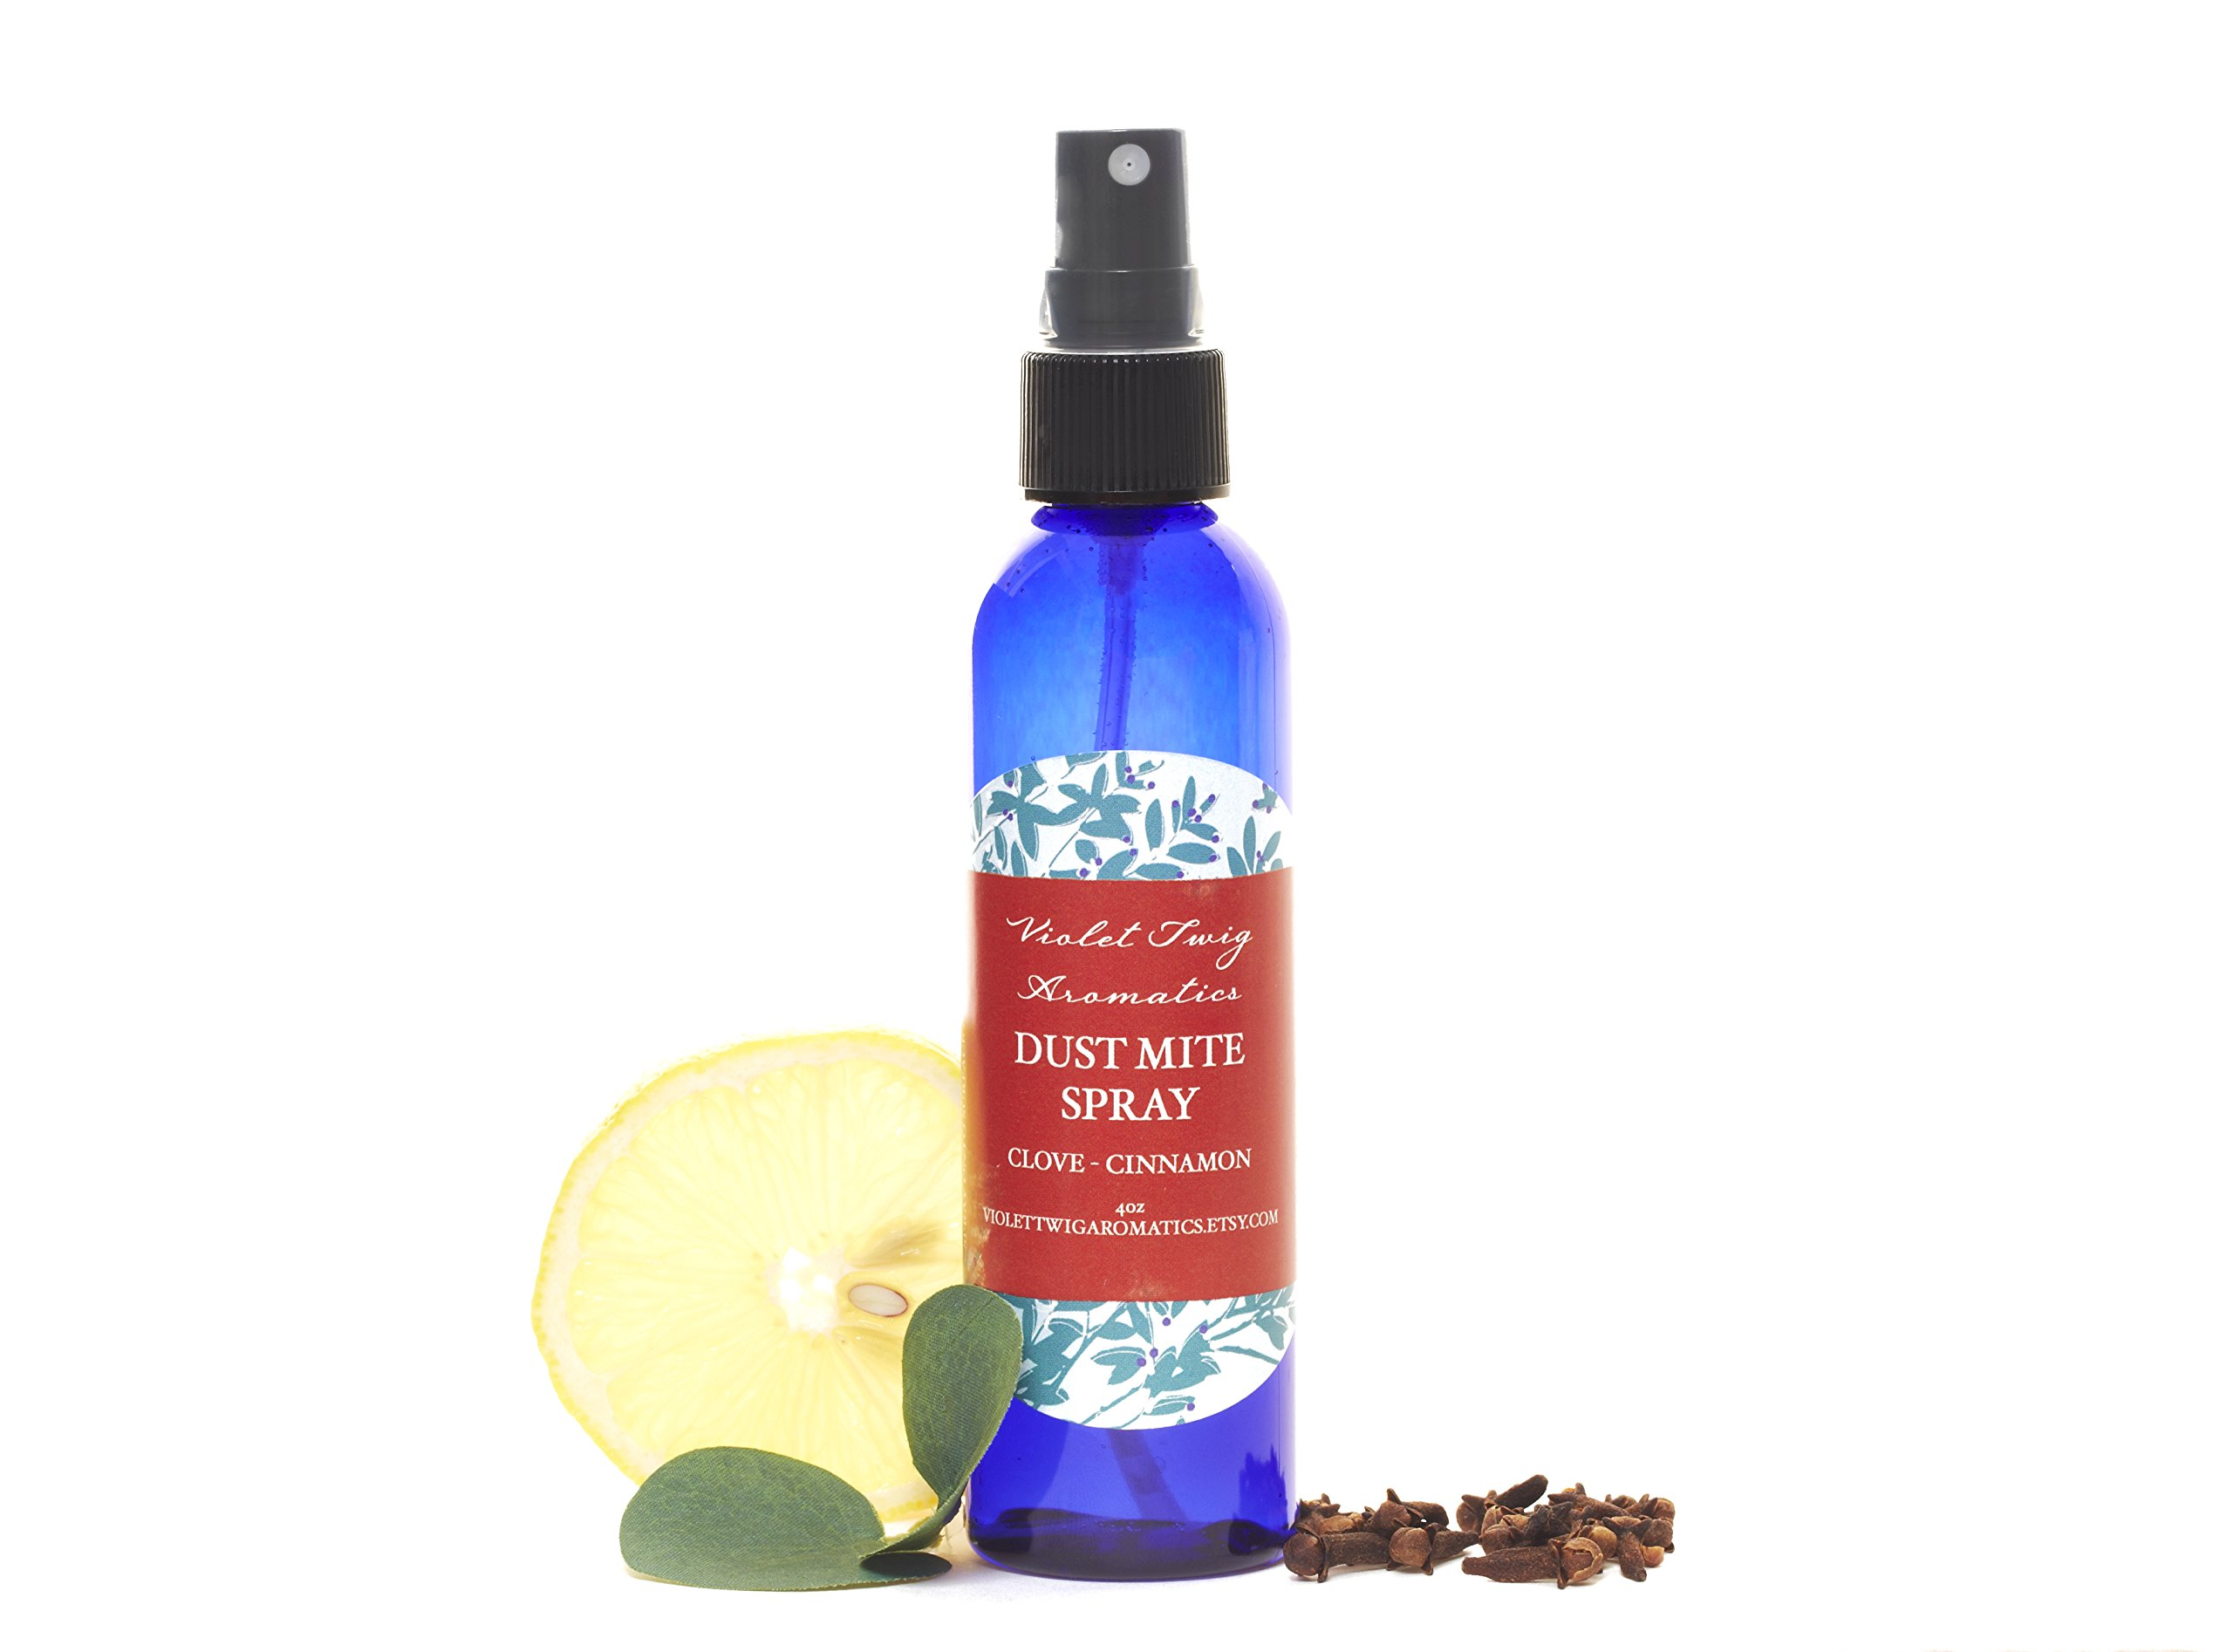 Dust Mite Spray - Mattress Spray - Pet Bed Spray - Kills Dust Mites - Natural Clove Oil - Mattress Disinfectant - Pillow Disinfectant - Disinfects Stuffed Animals - Essential Oils - Natural and Organic - Breaks Down Pet Urine Pheromones